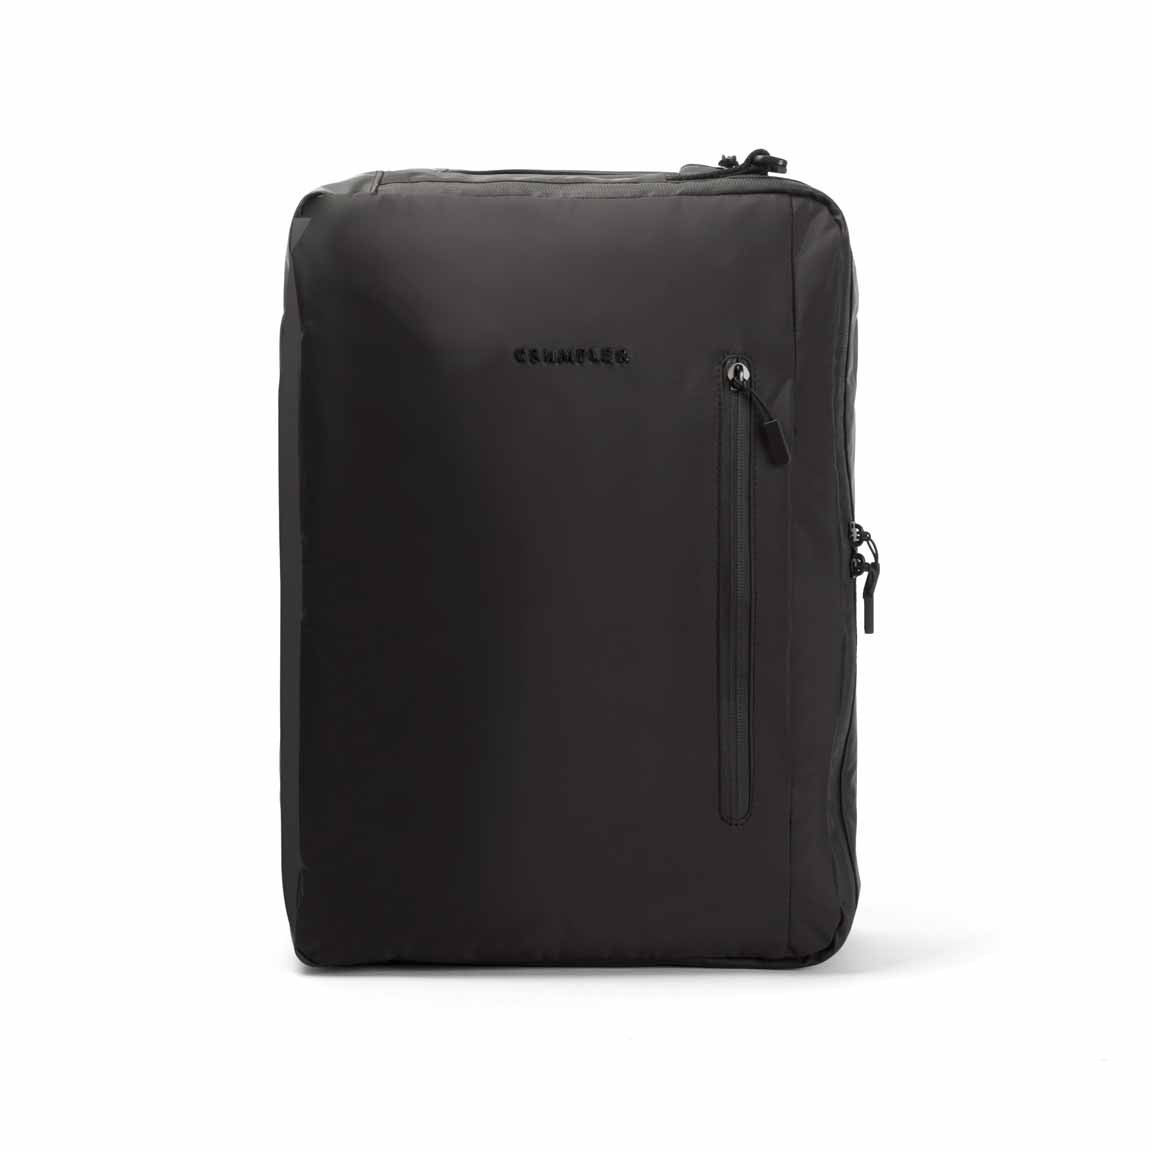 "Crumpler Director's Cut Laptop 15"" - dull black"